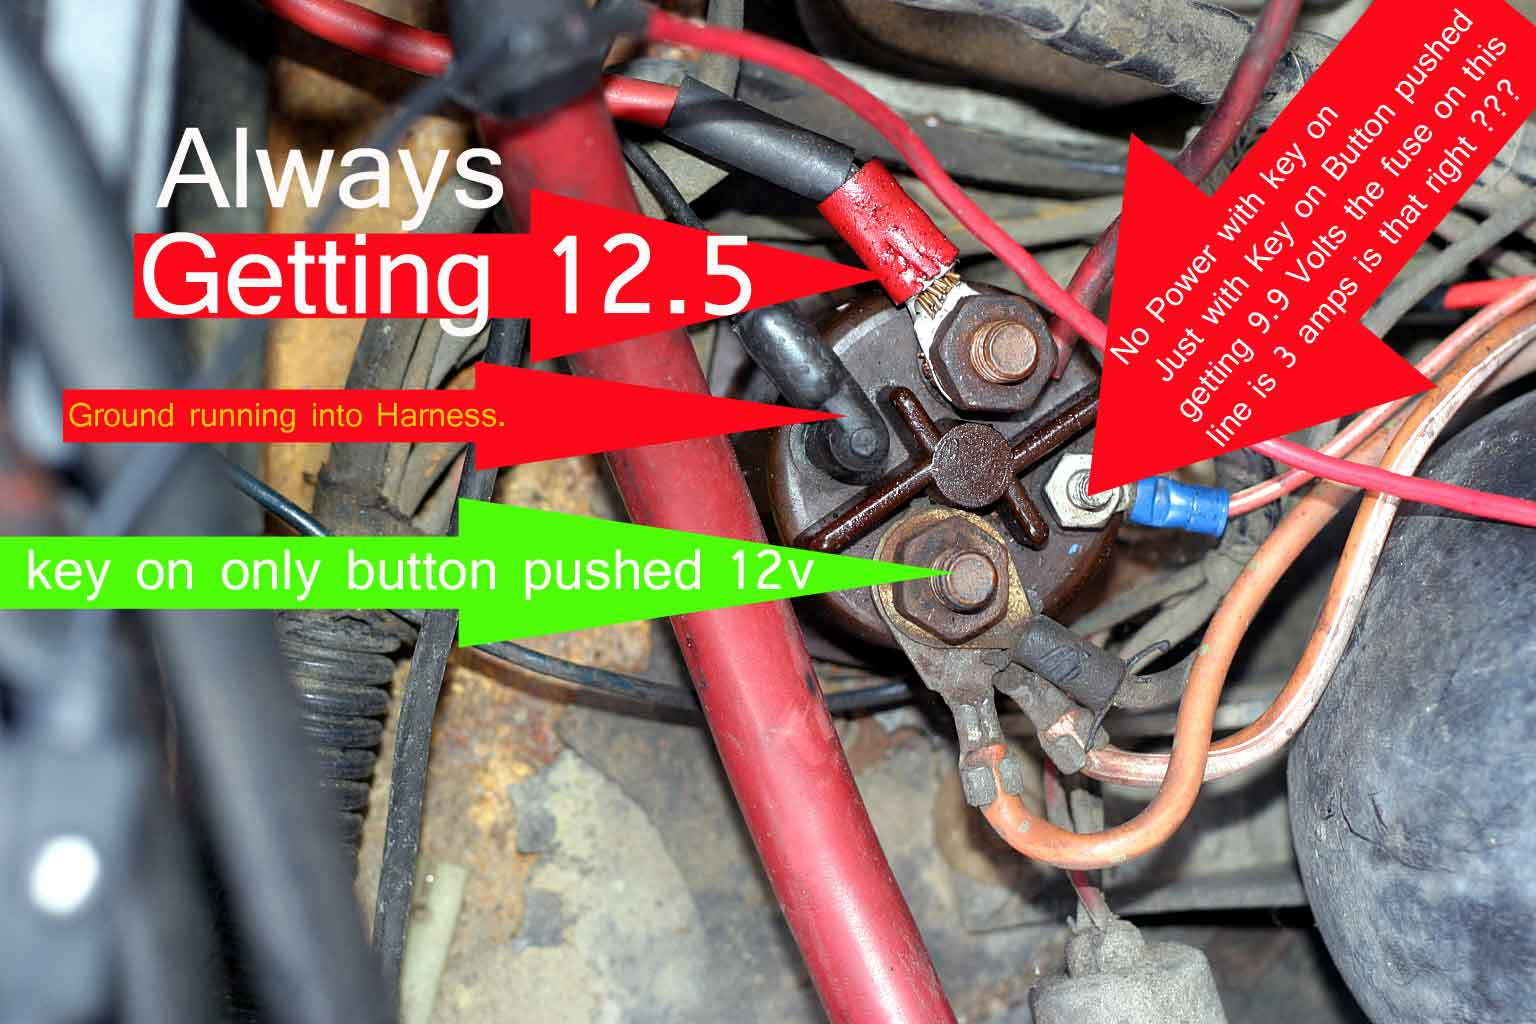 2002 7 3 Glow Plug Relay Wiring Diagram Simple Detailed 1995 F250 Ford Diesel 1999 Mustang 8 Auto Electrical Powerstroke